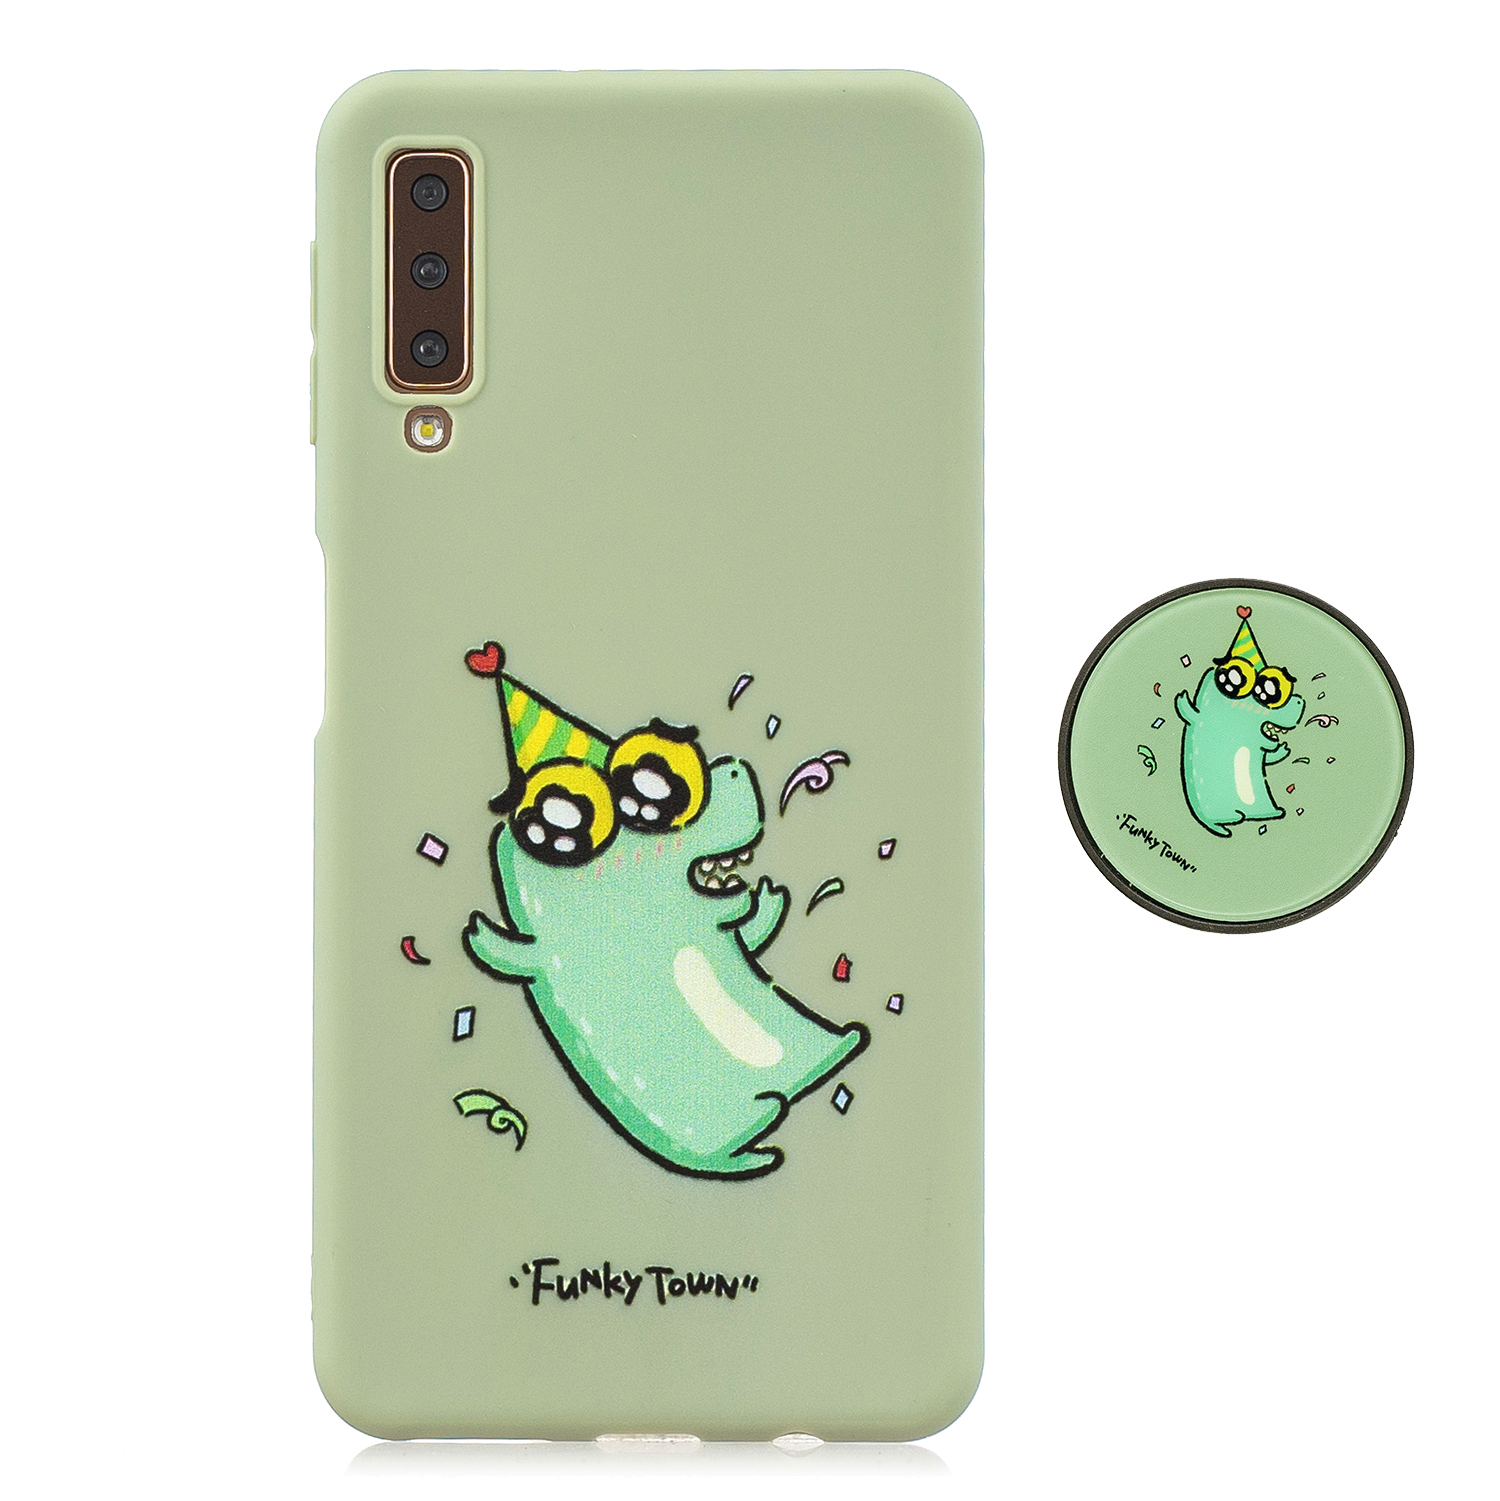 For Samsung A7 2018 A750 Full Cover Protective Phone Case Cartoon Pattern Solid Color TPU Phone Case with Adjustable Bracket 2